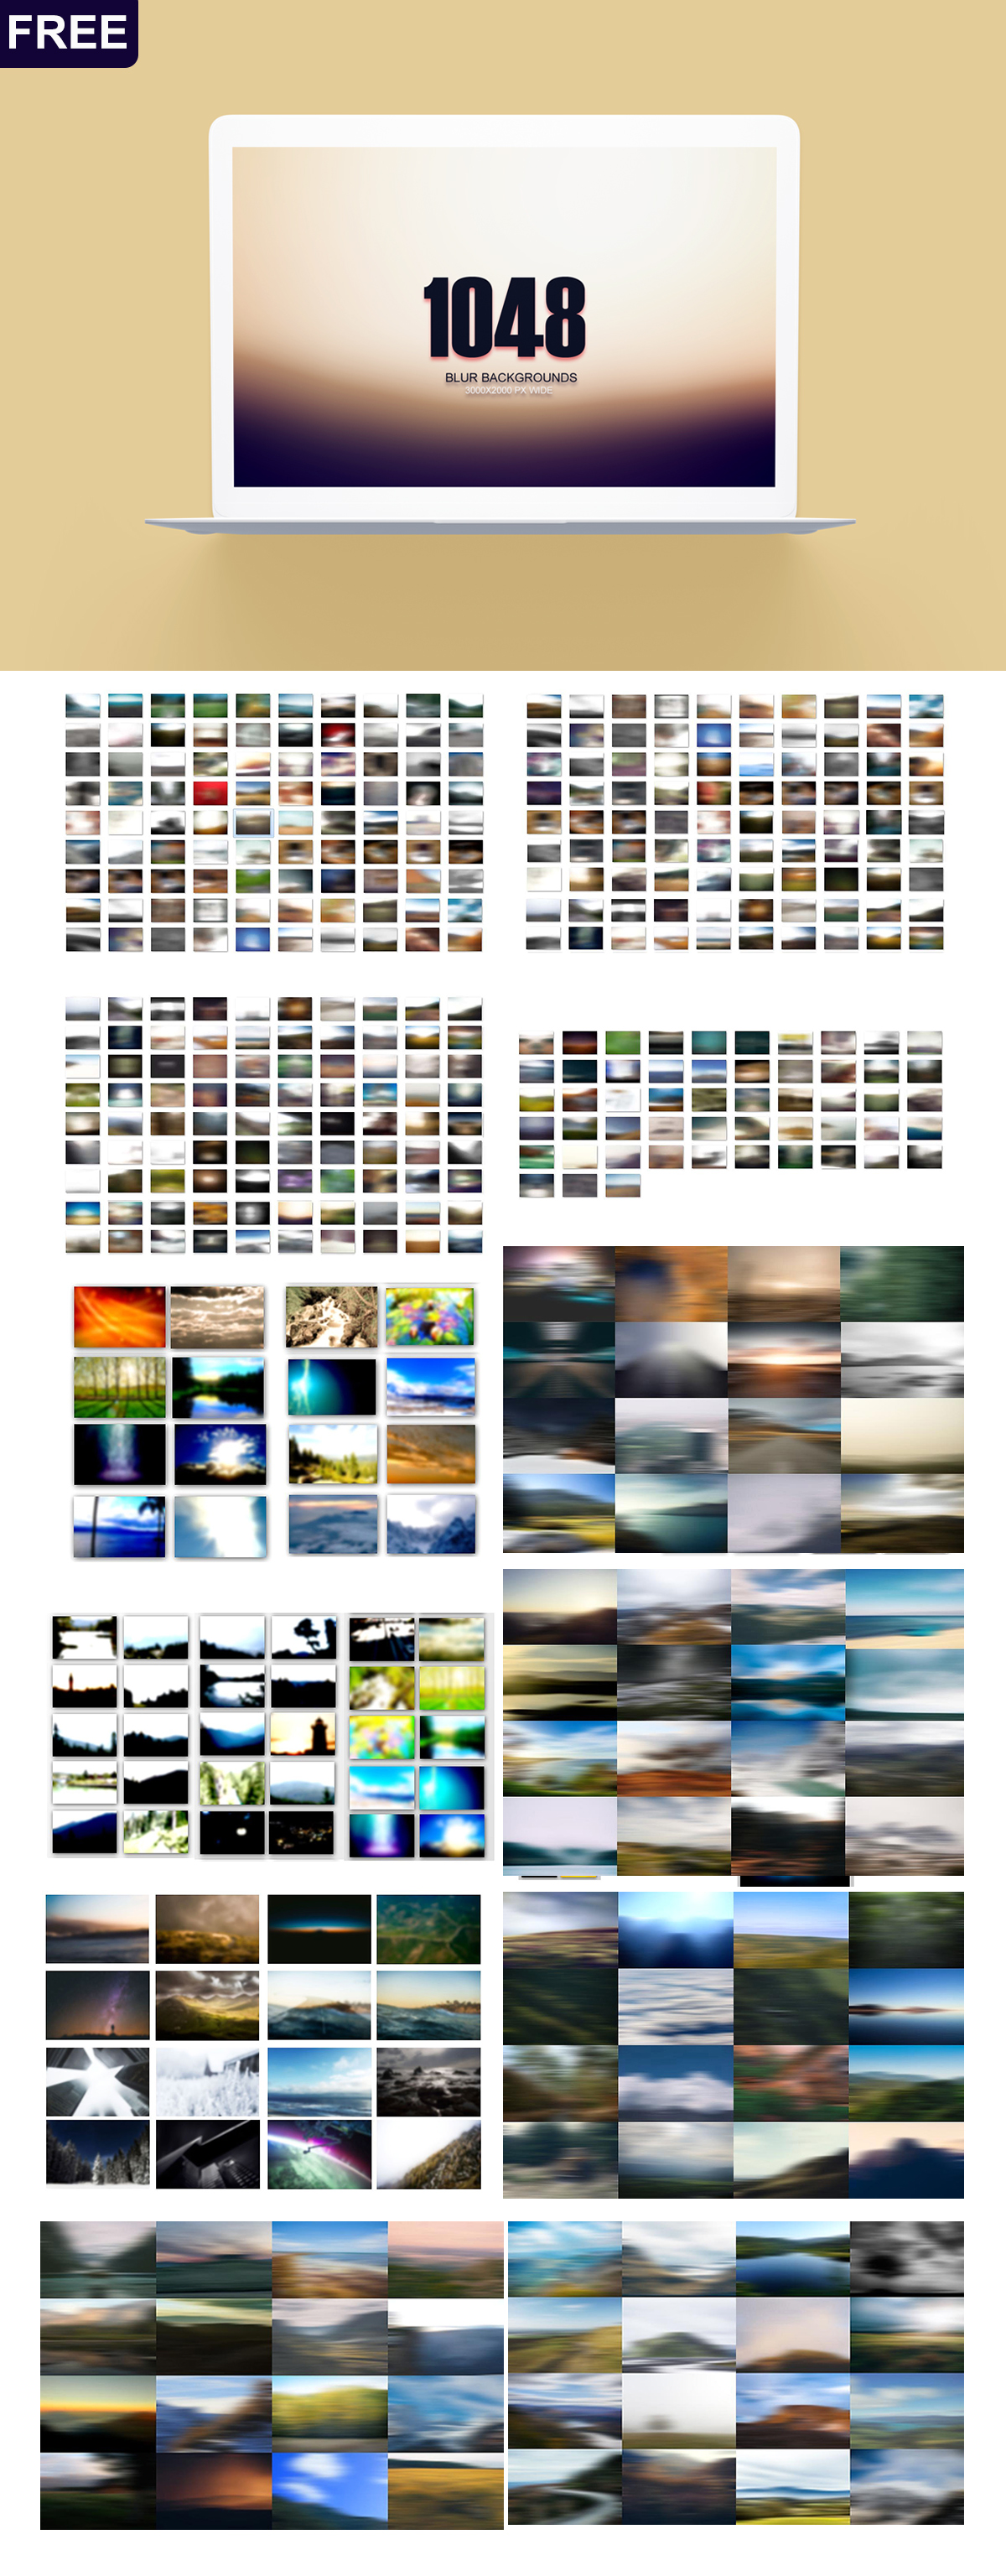 1048 Free Blur Backgrounds Pack